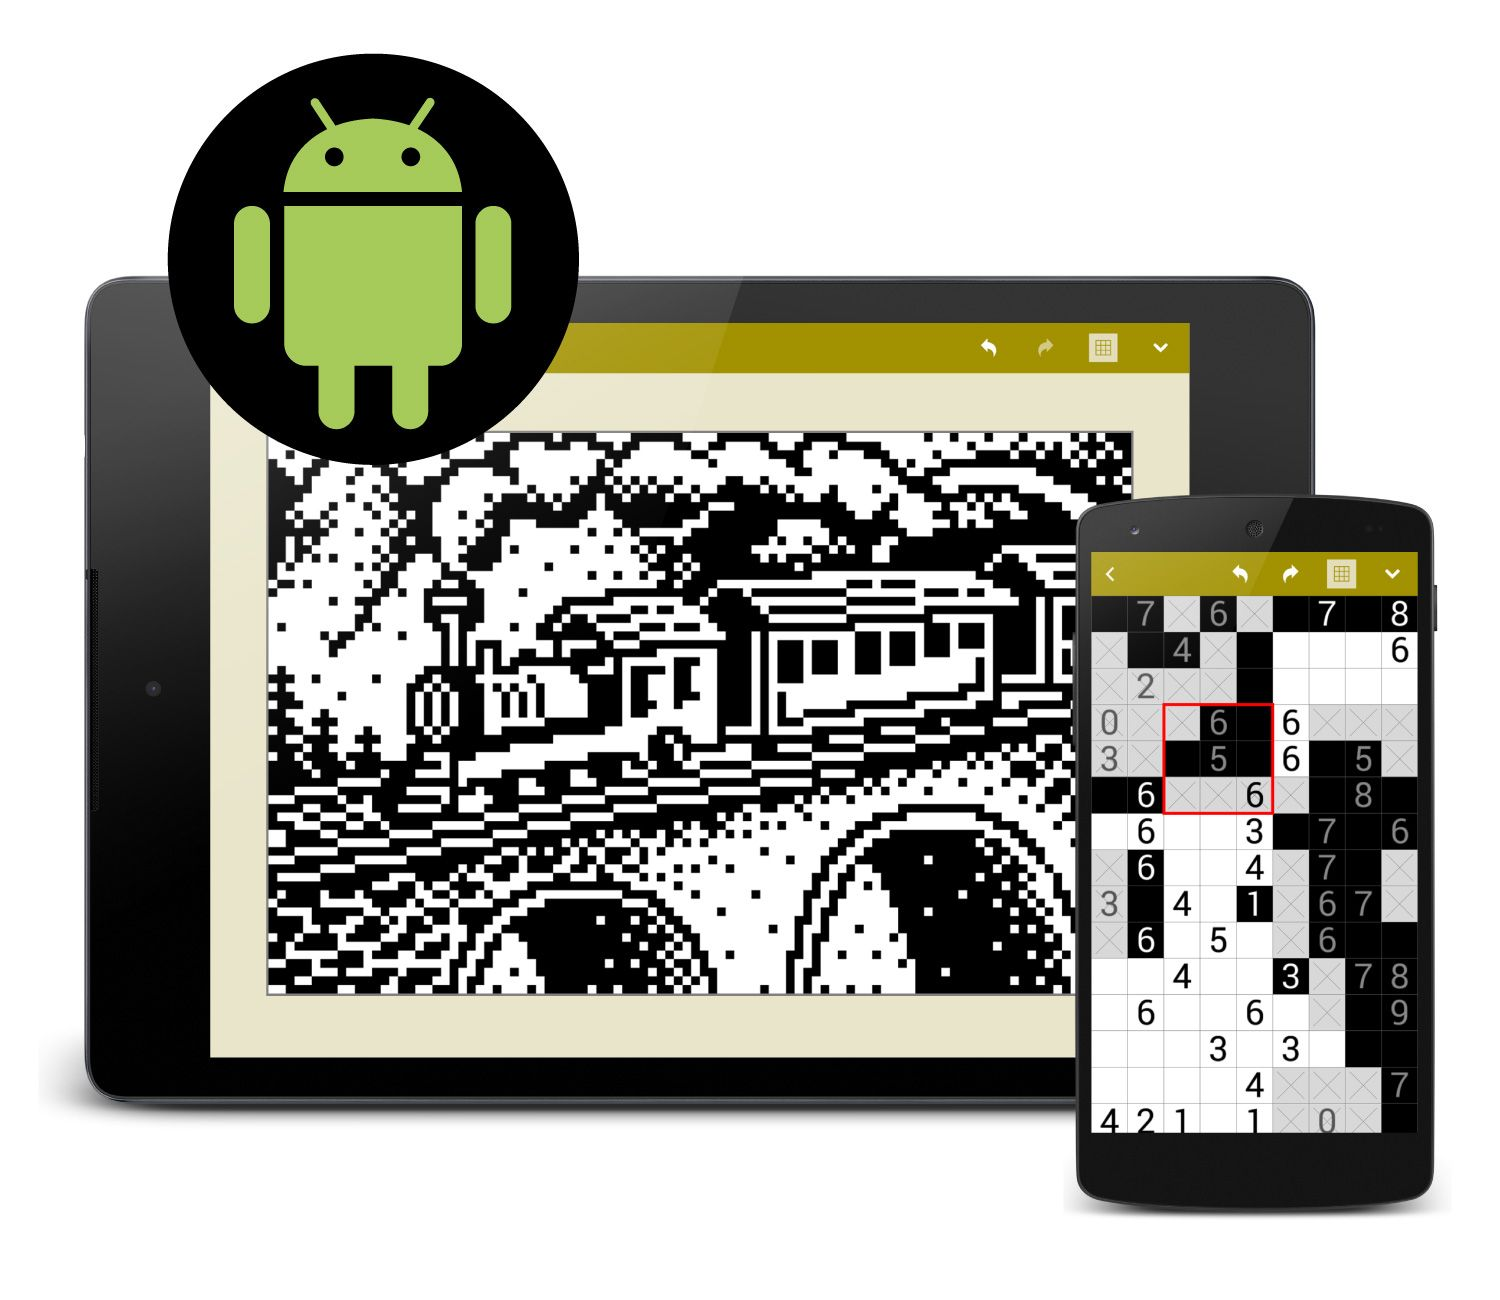 FillaPix for Android First Android Puzzle Game Released